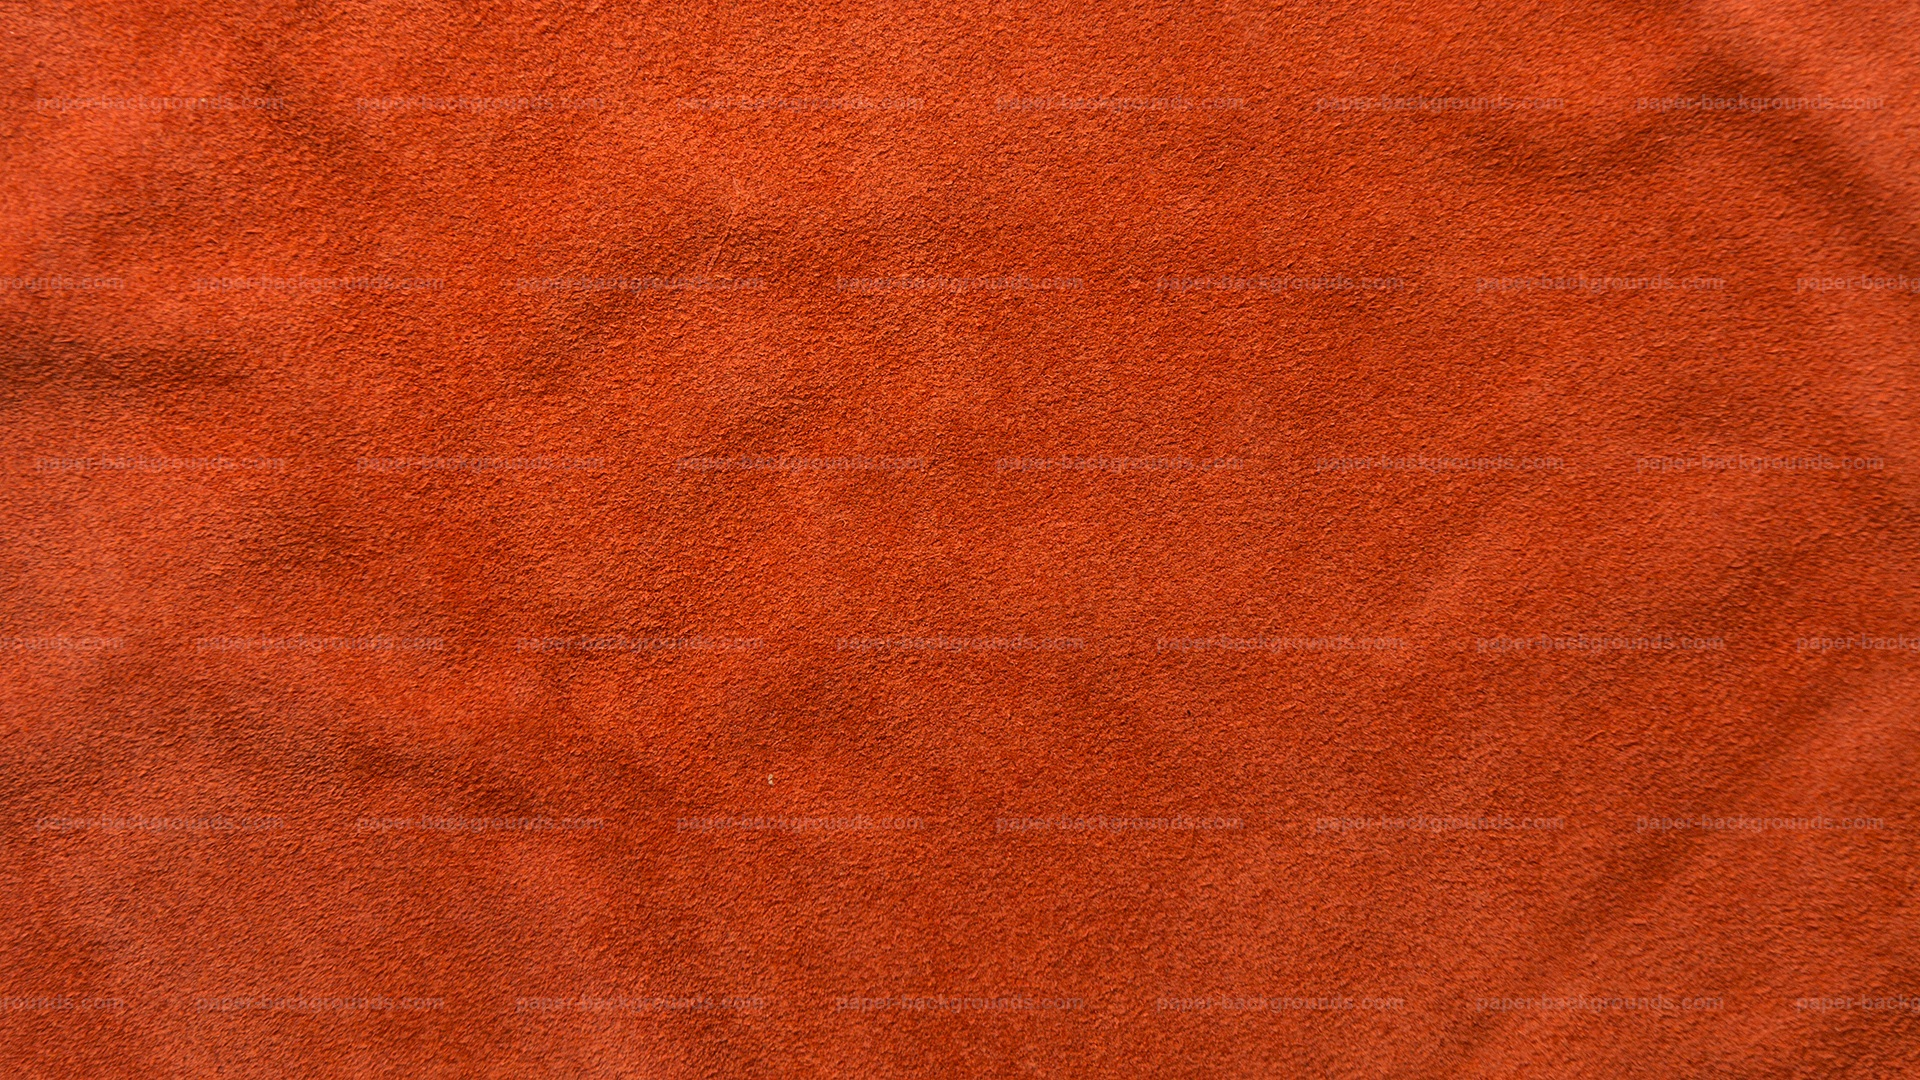 Orange Soft Leather Texture HD